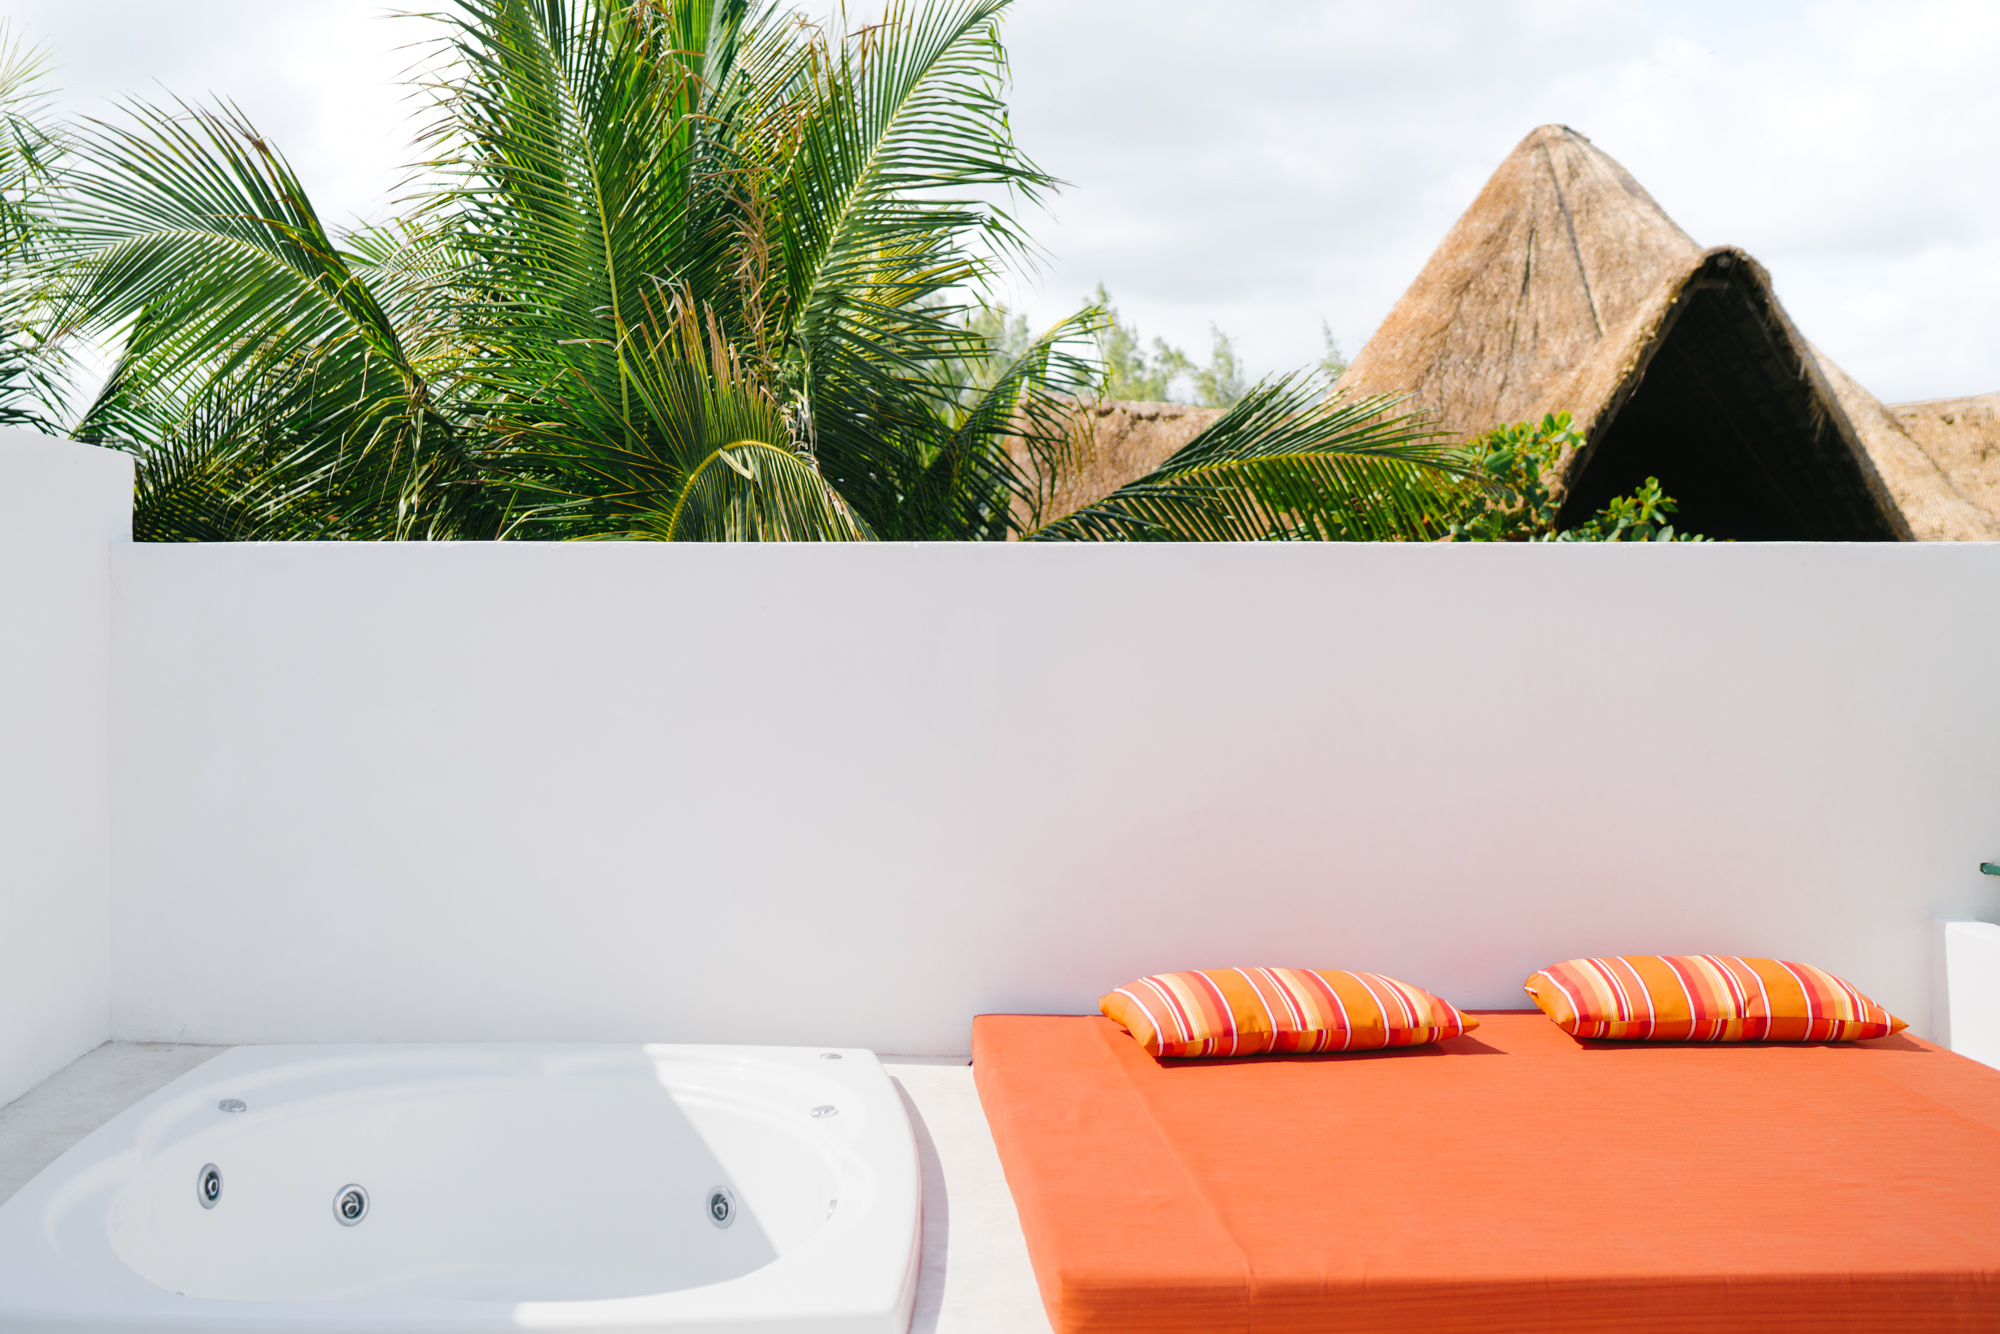 Rooftop Jacuzzi Room at The Beach Tulum